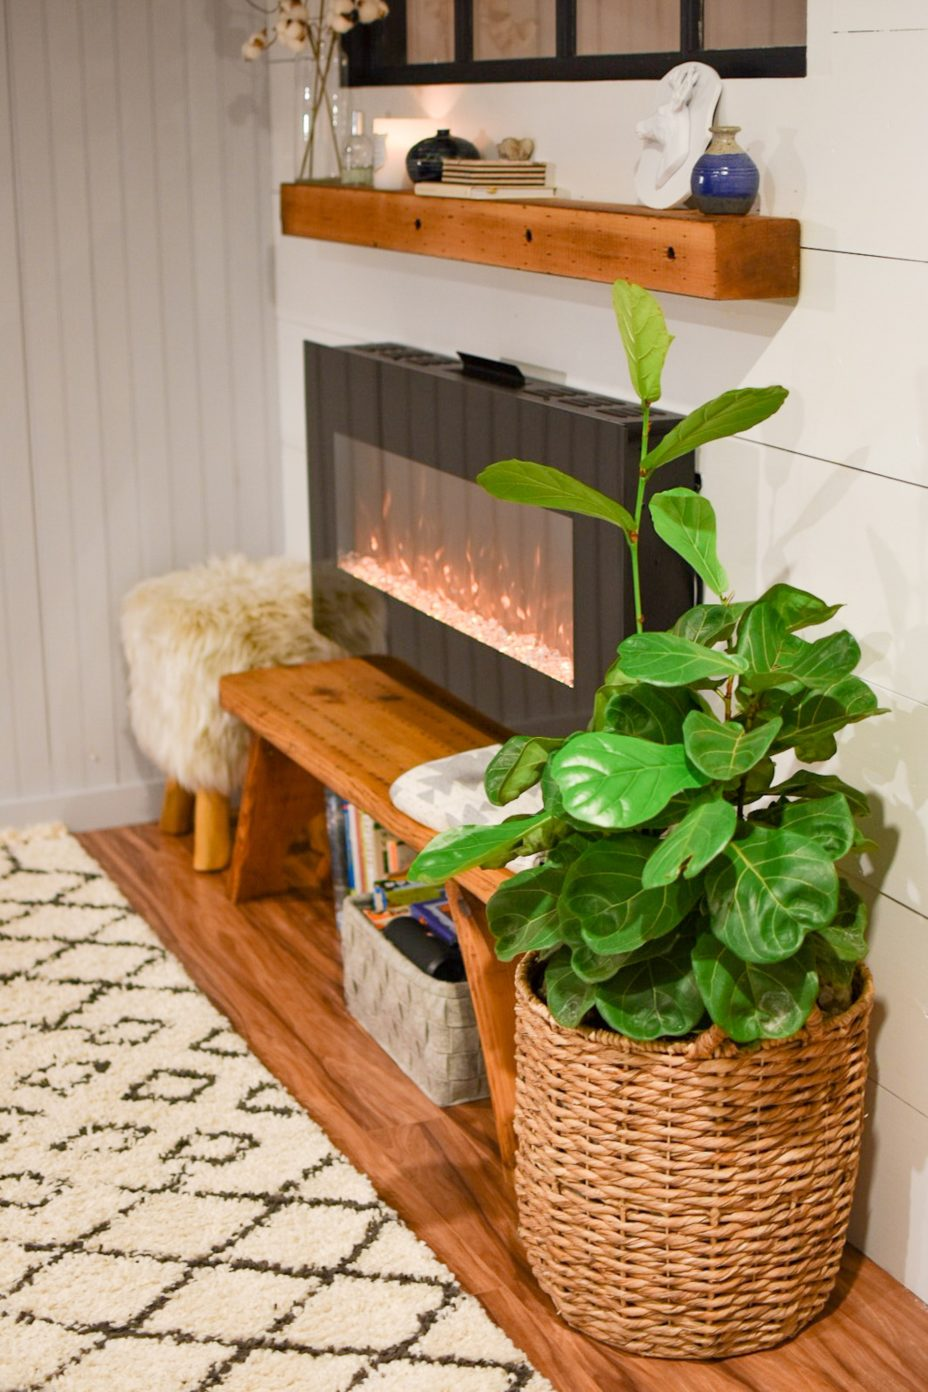 6 Ways to Make Your Home Cozier in Winter